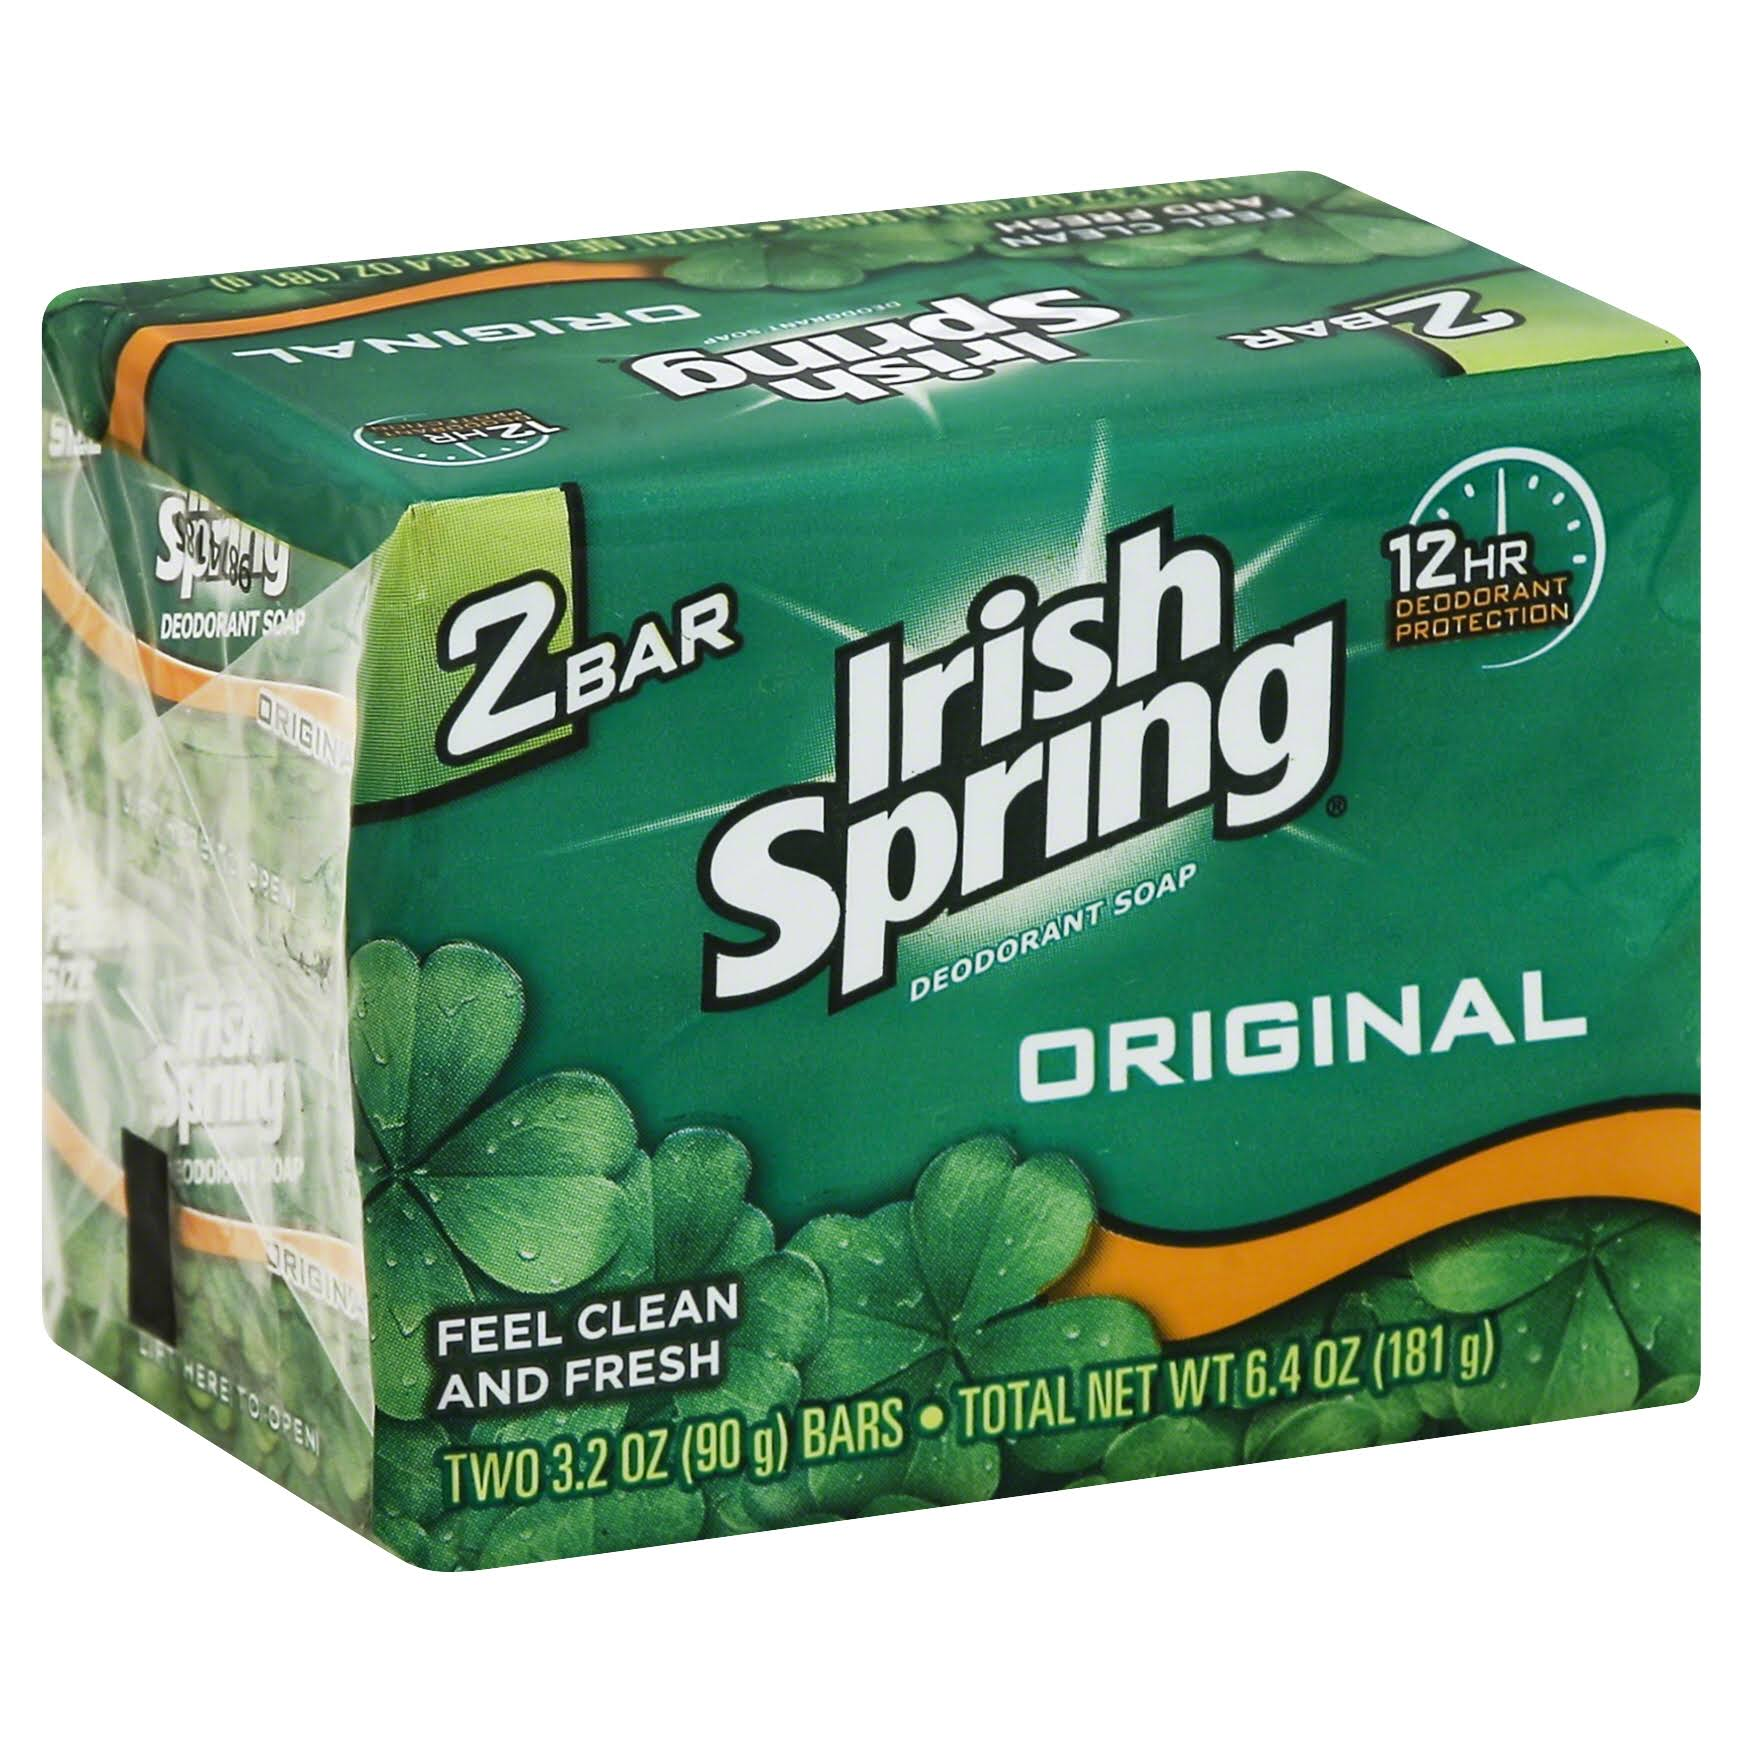 Irish Spring Original Deodorant Soap - 2 x 3.2 oz